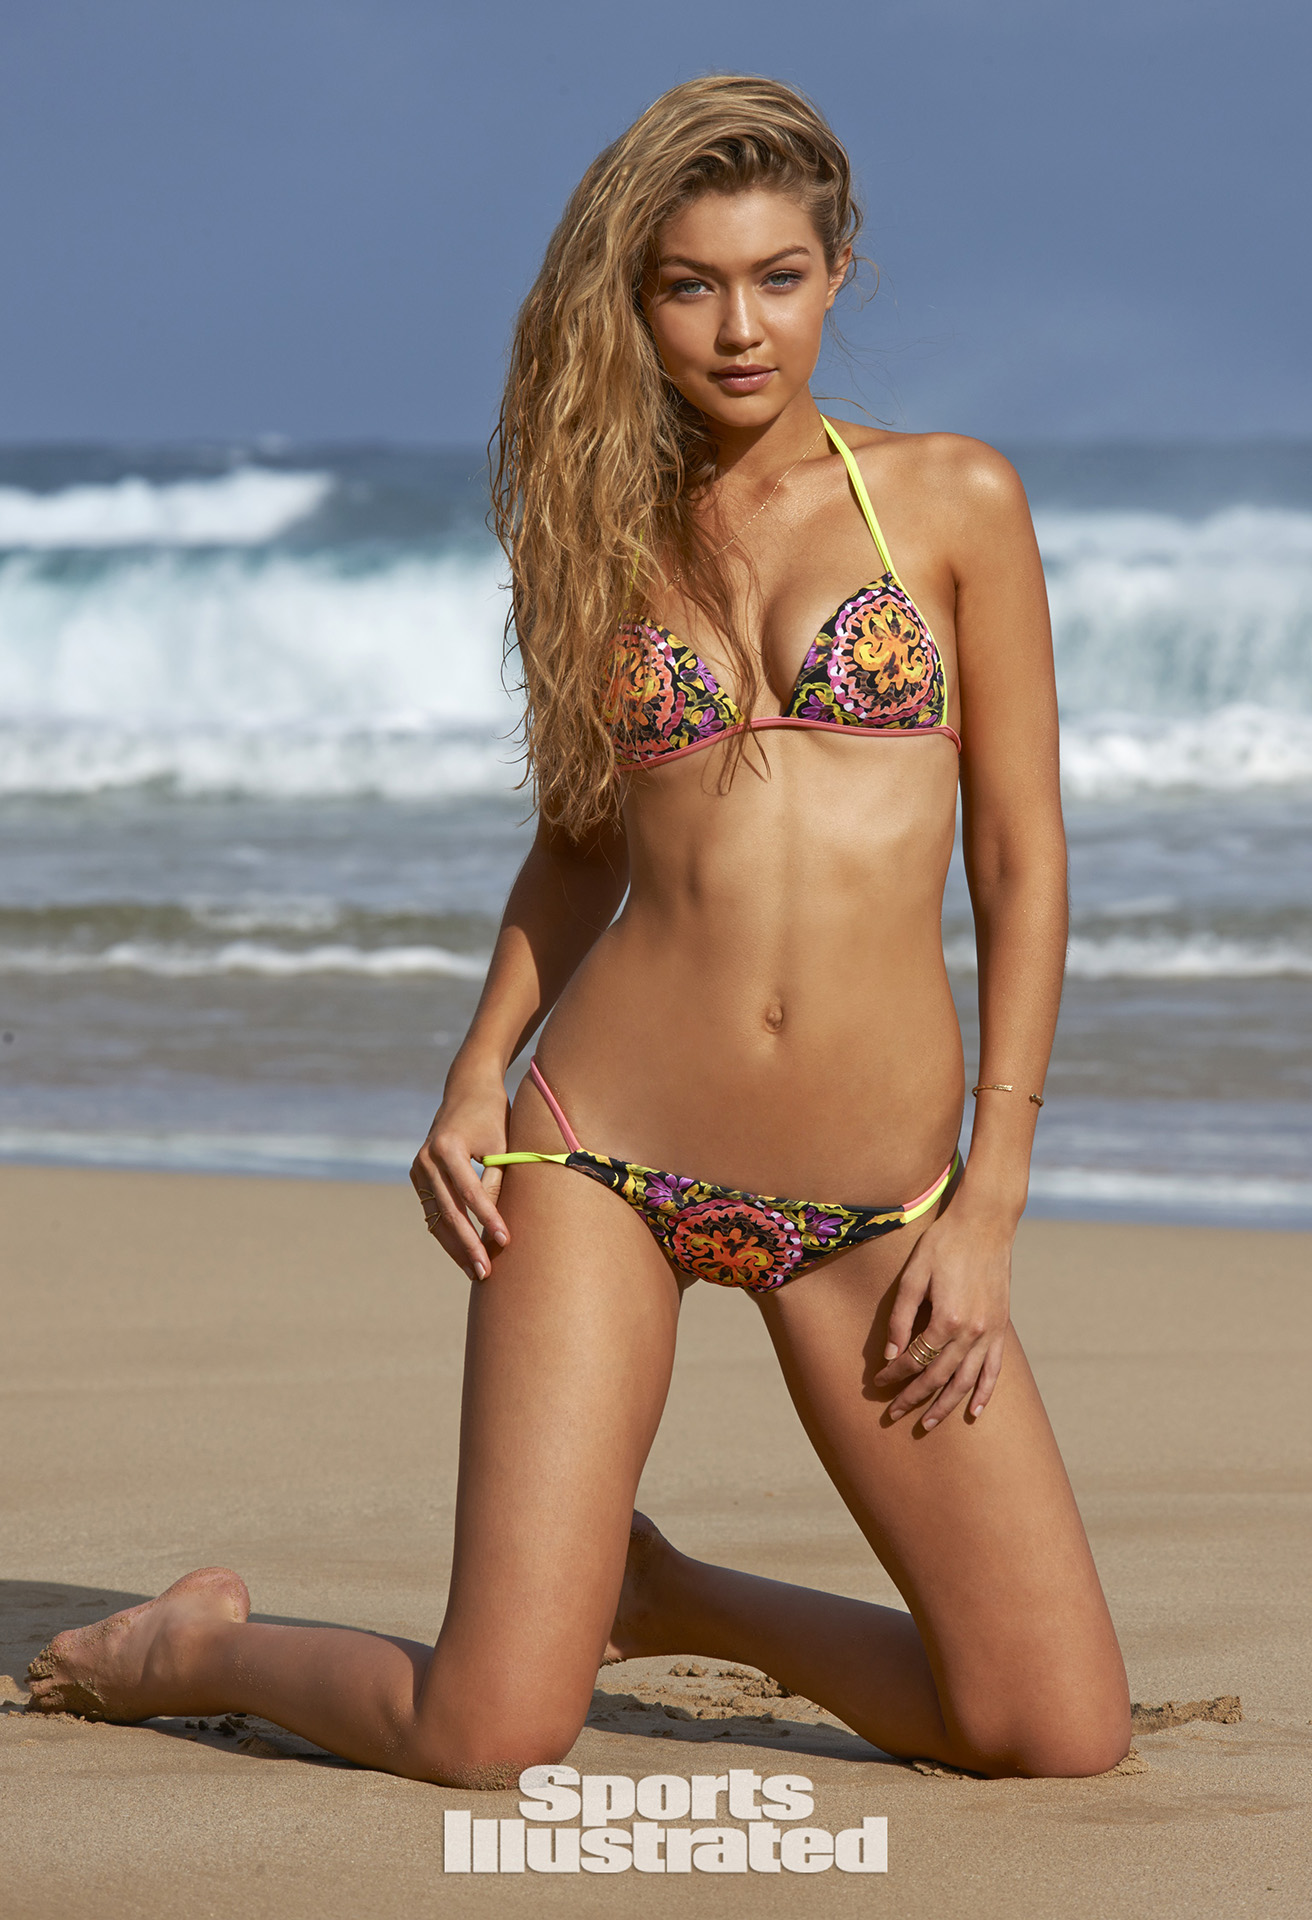 Gigi hadid sports illustrated swimsuit